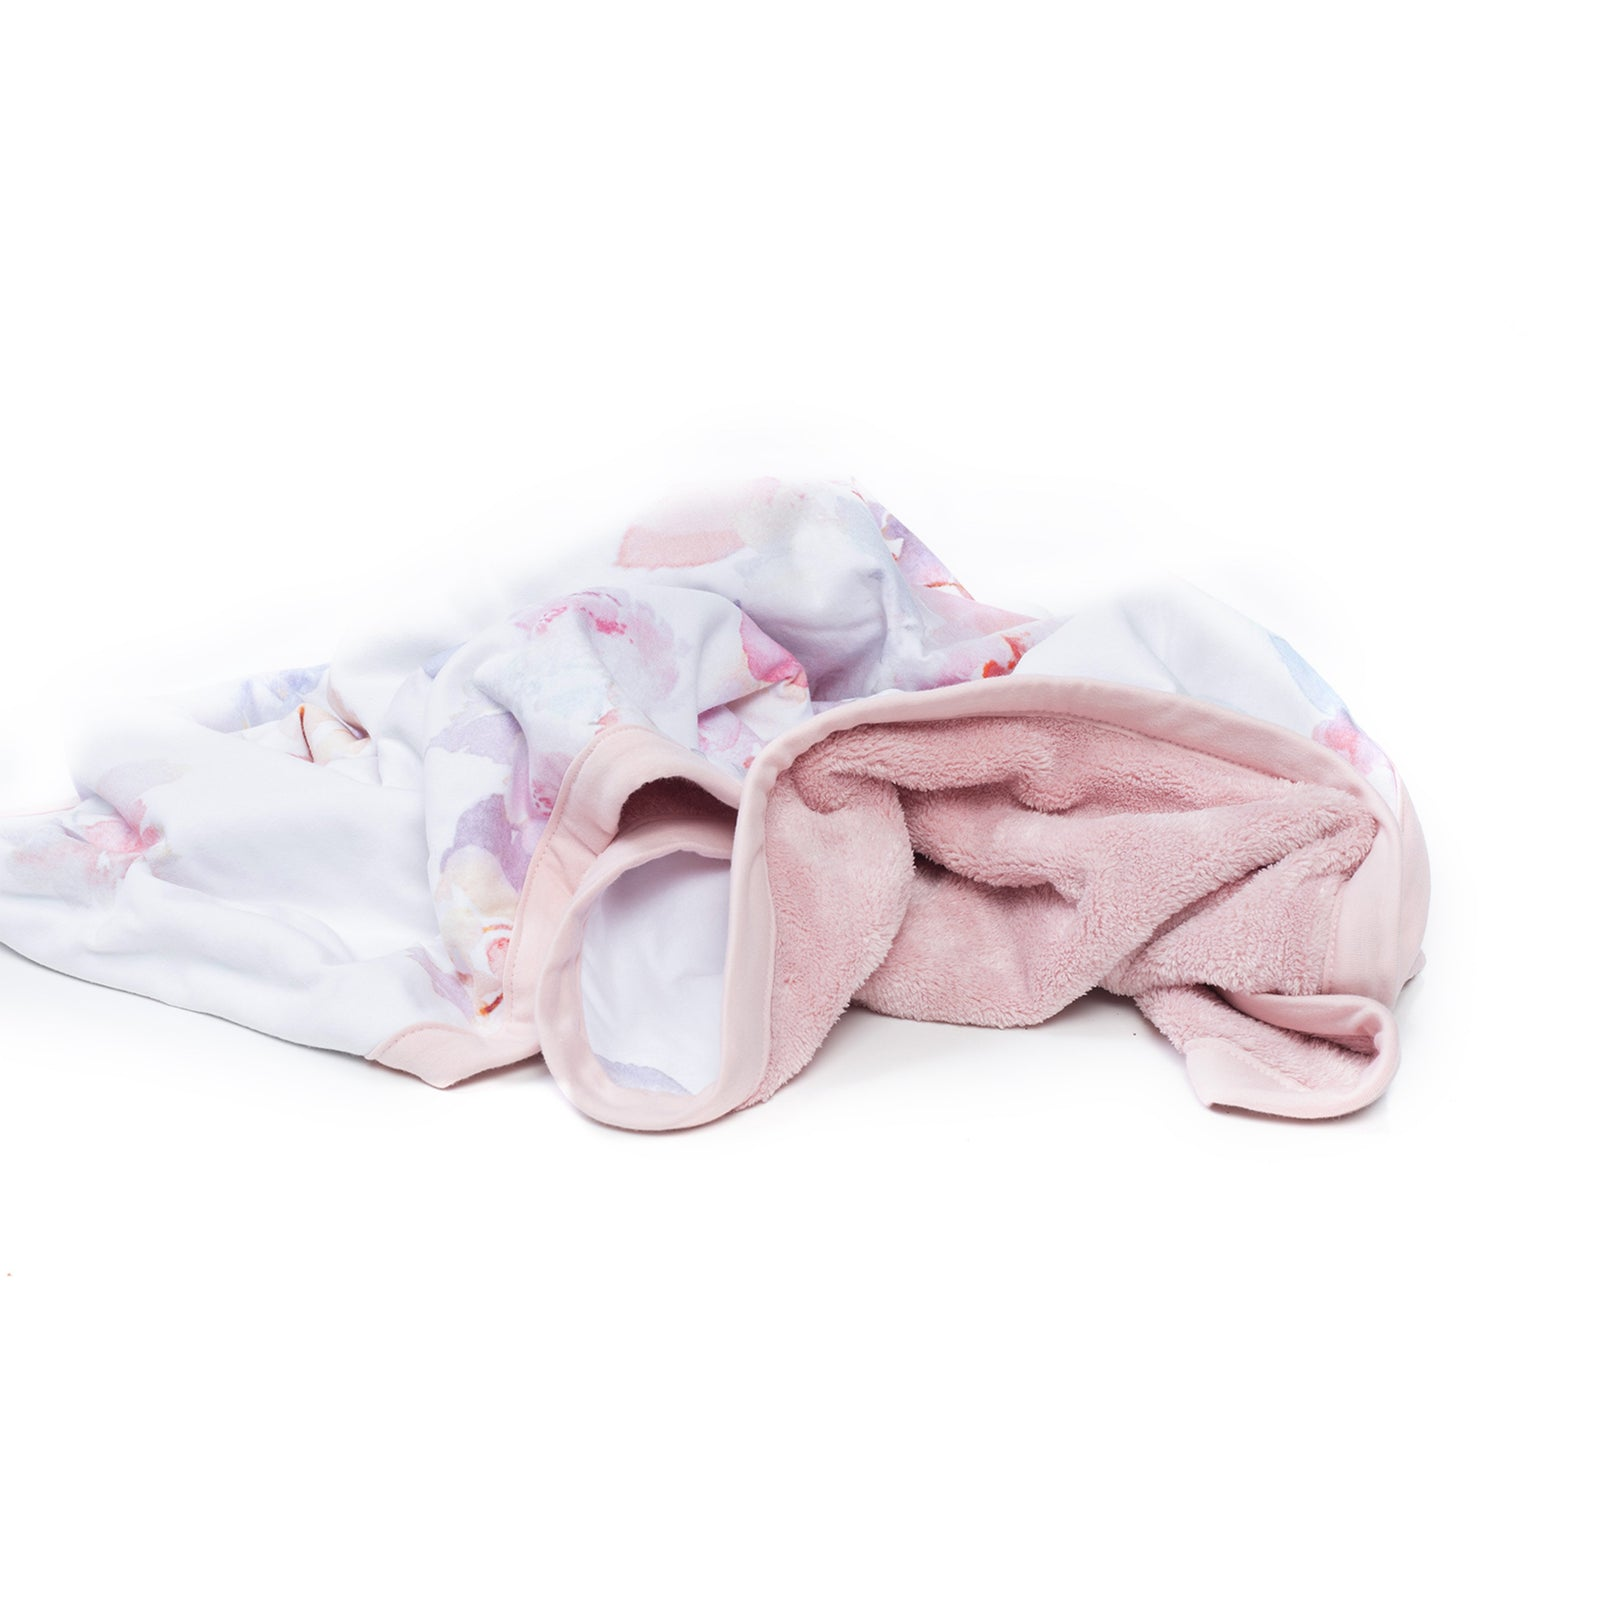 Blush Pink Prim Cuddle Blanket